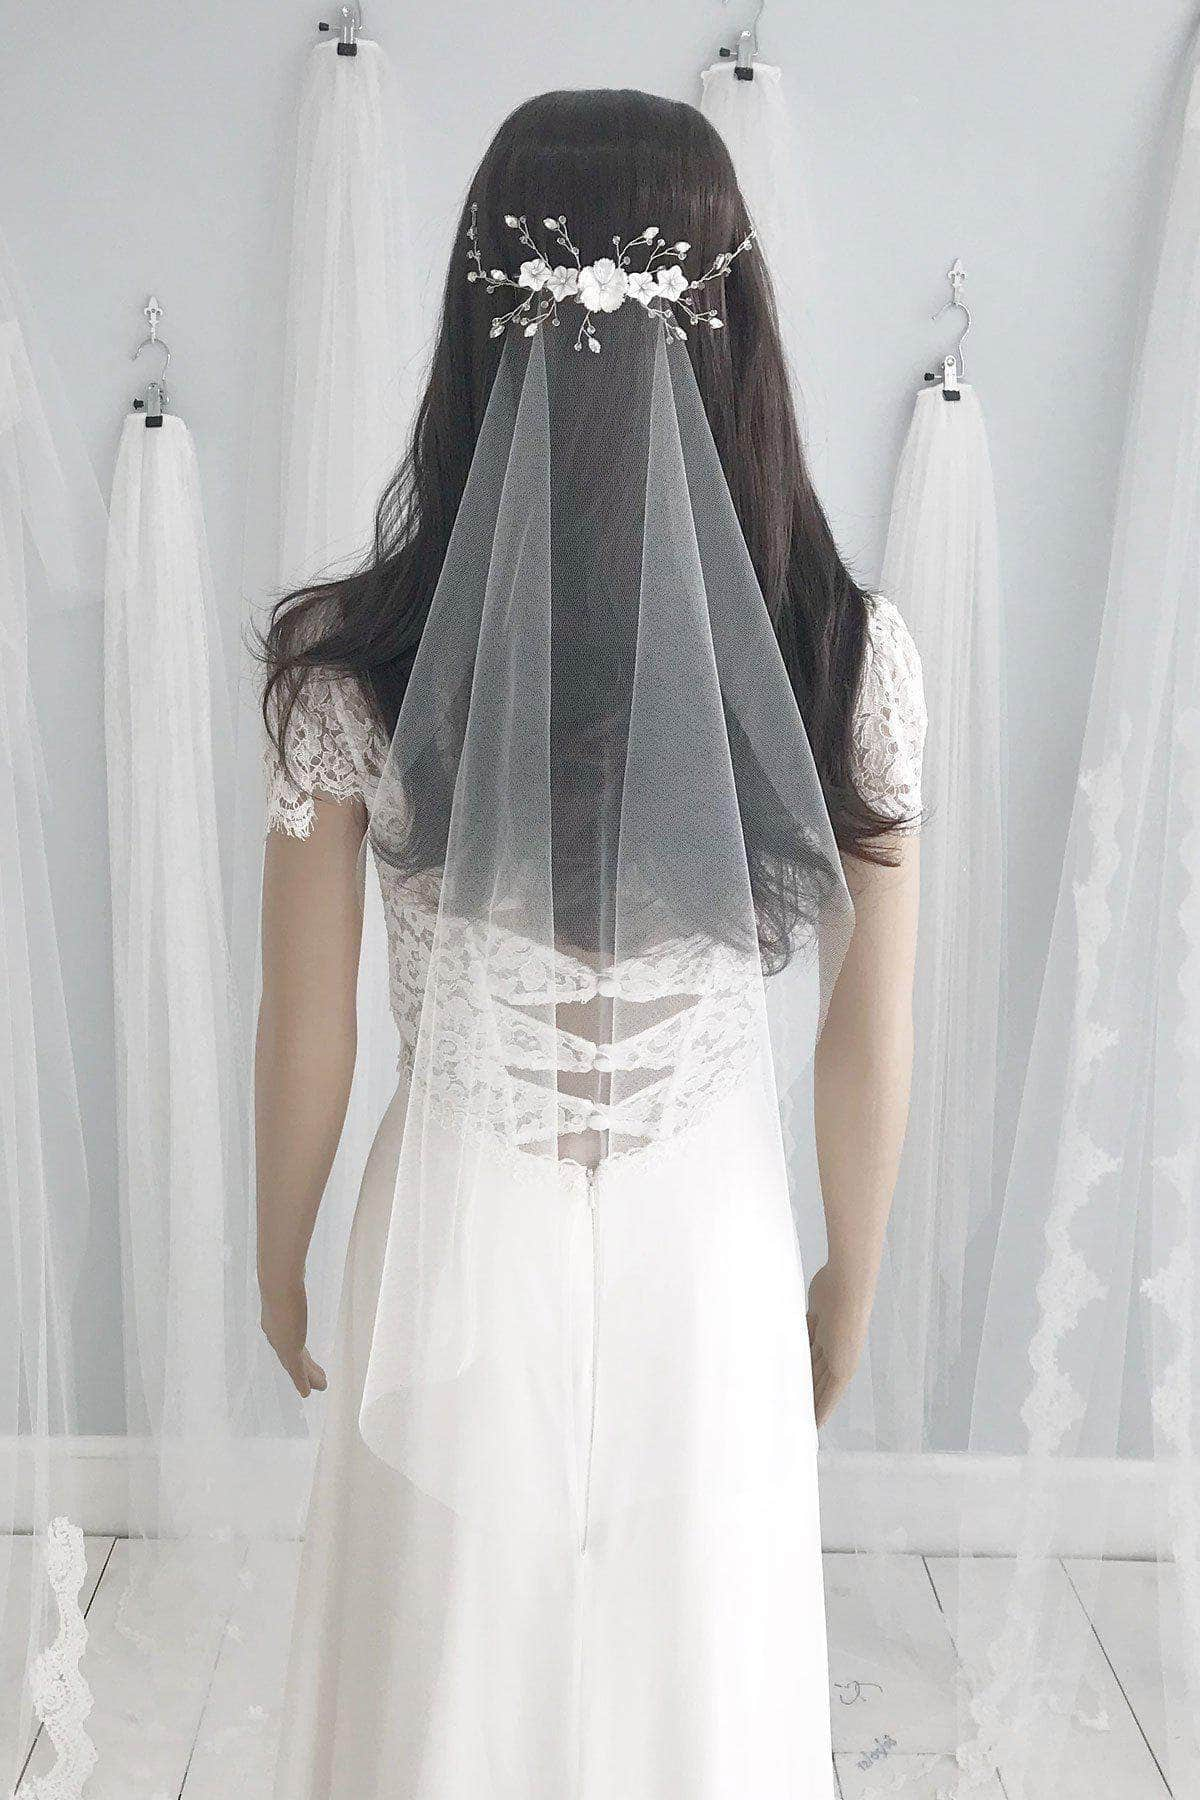 Wedding Veil Off-white (pictured) / Elbow / Silver Barely there wedding veil - 'Skylar'